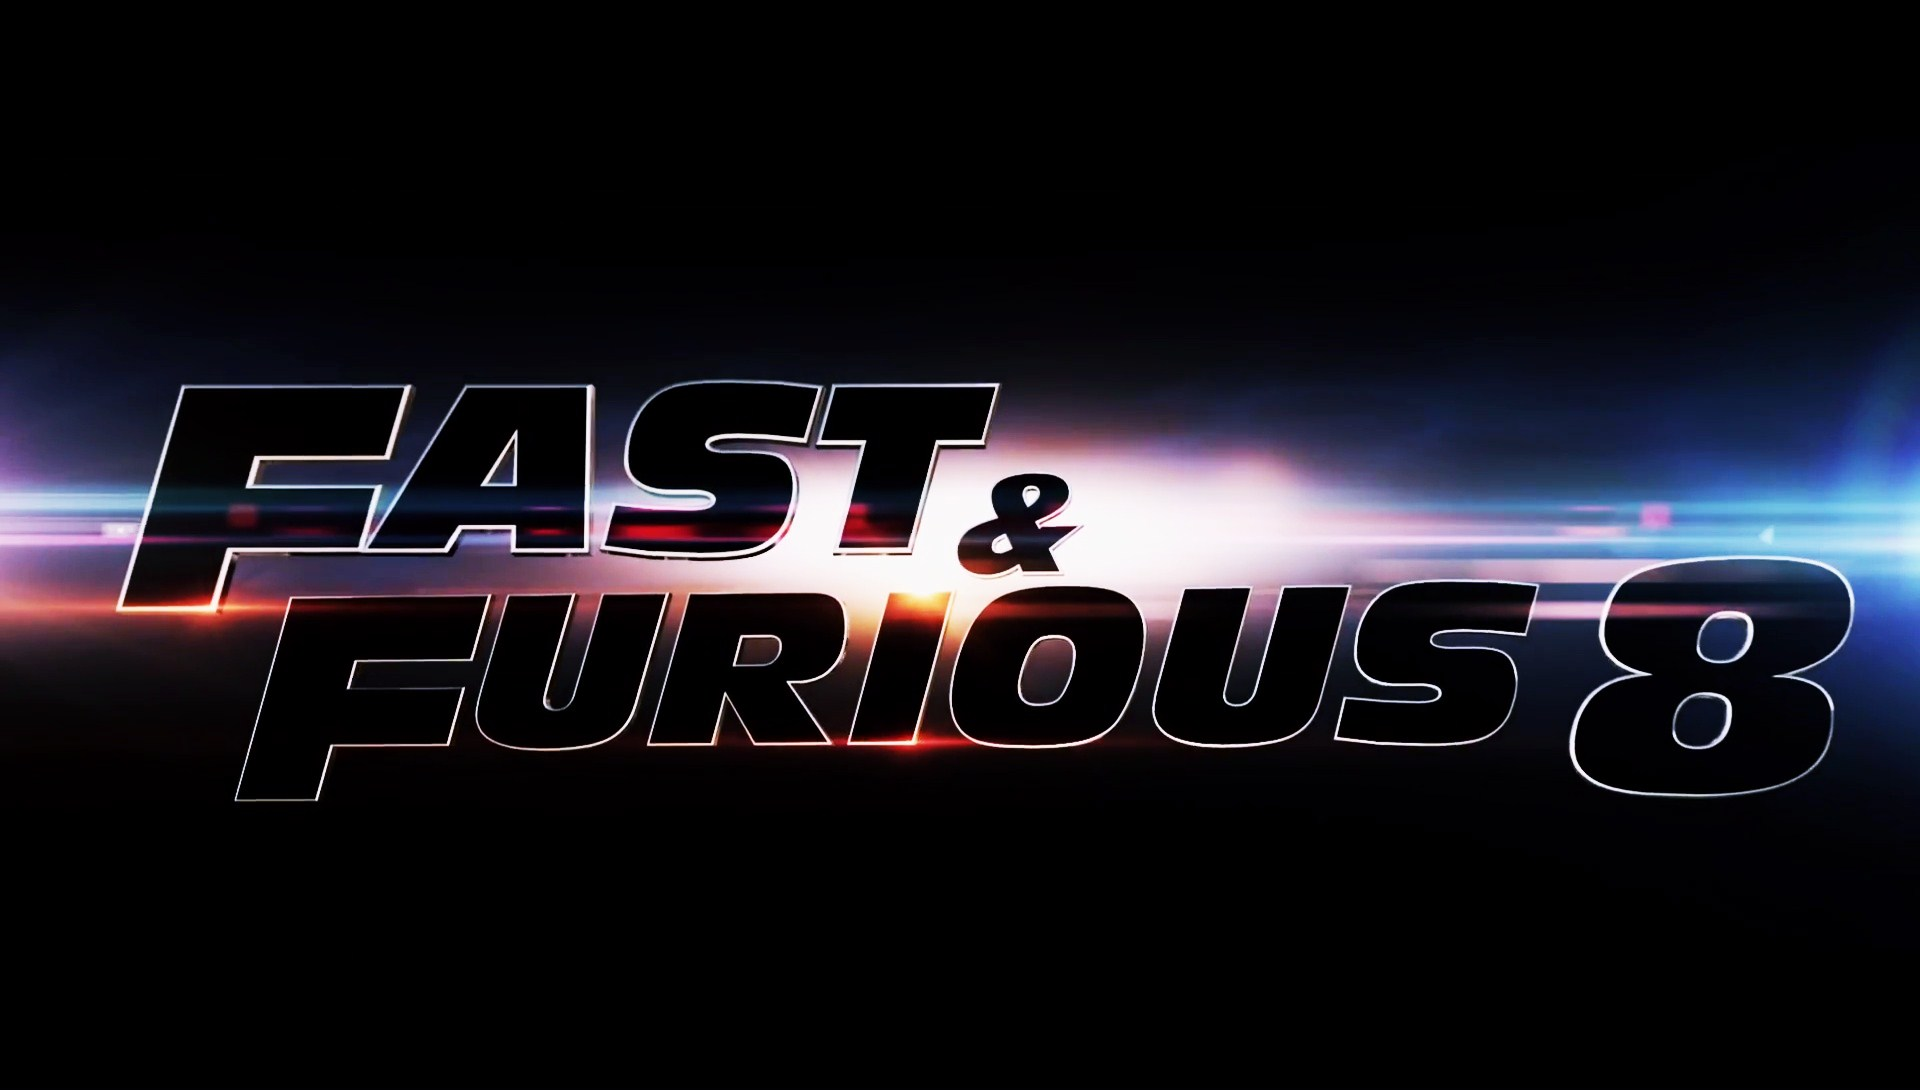 Fast And Furious 8 Logo Wallpaper 61267 1920x1090px